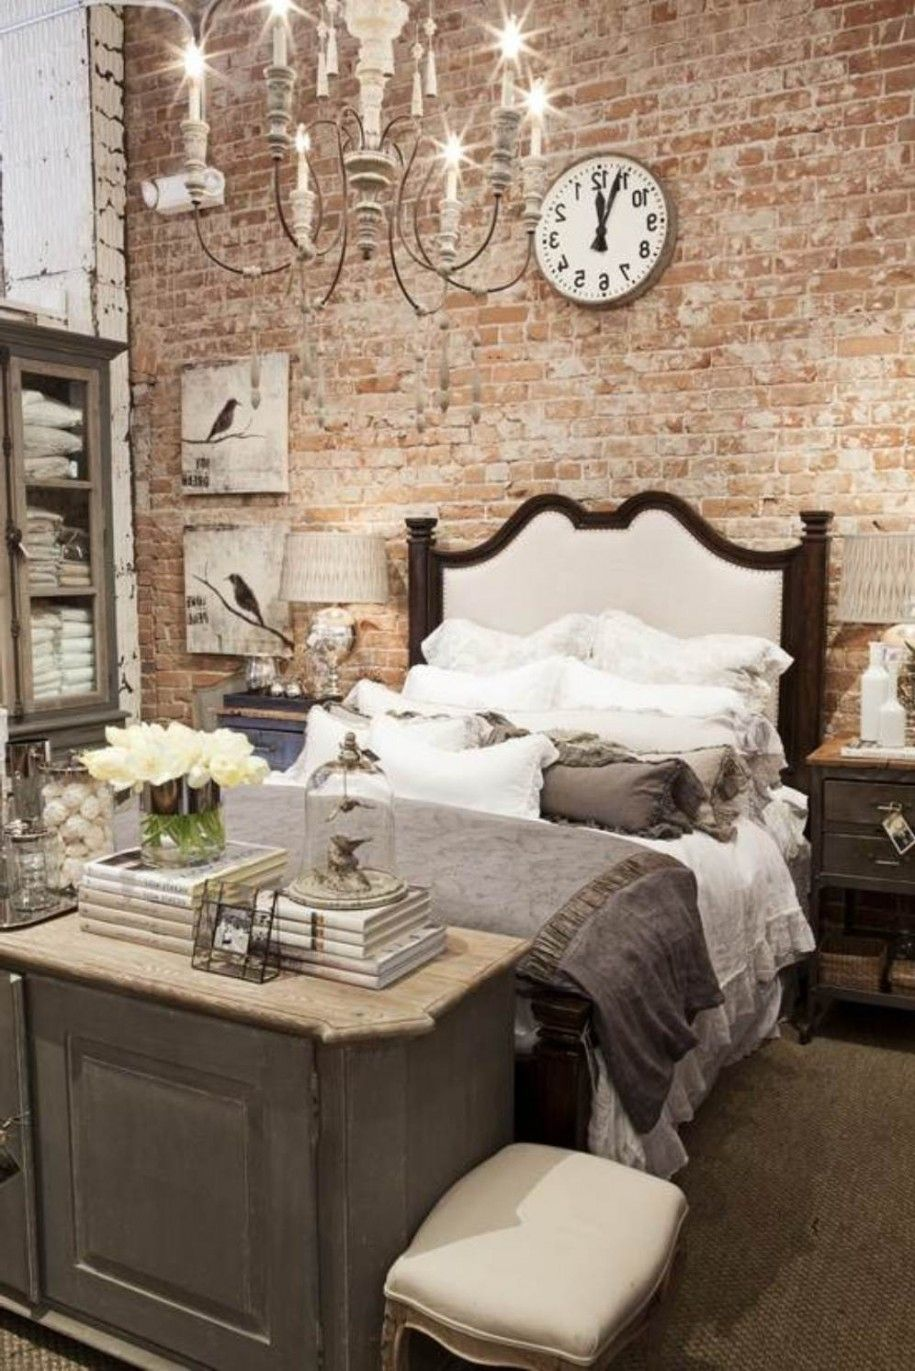 Romantic Bedroom Decorating Ideas Bedroom Rustic Design Romantic Bedroom Ideas Exposed Brick